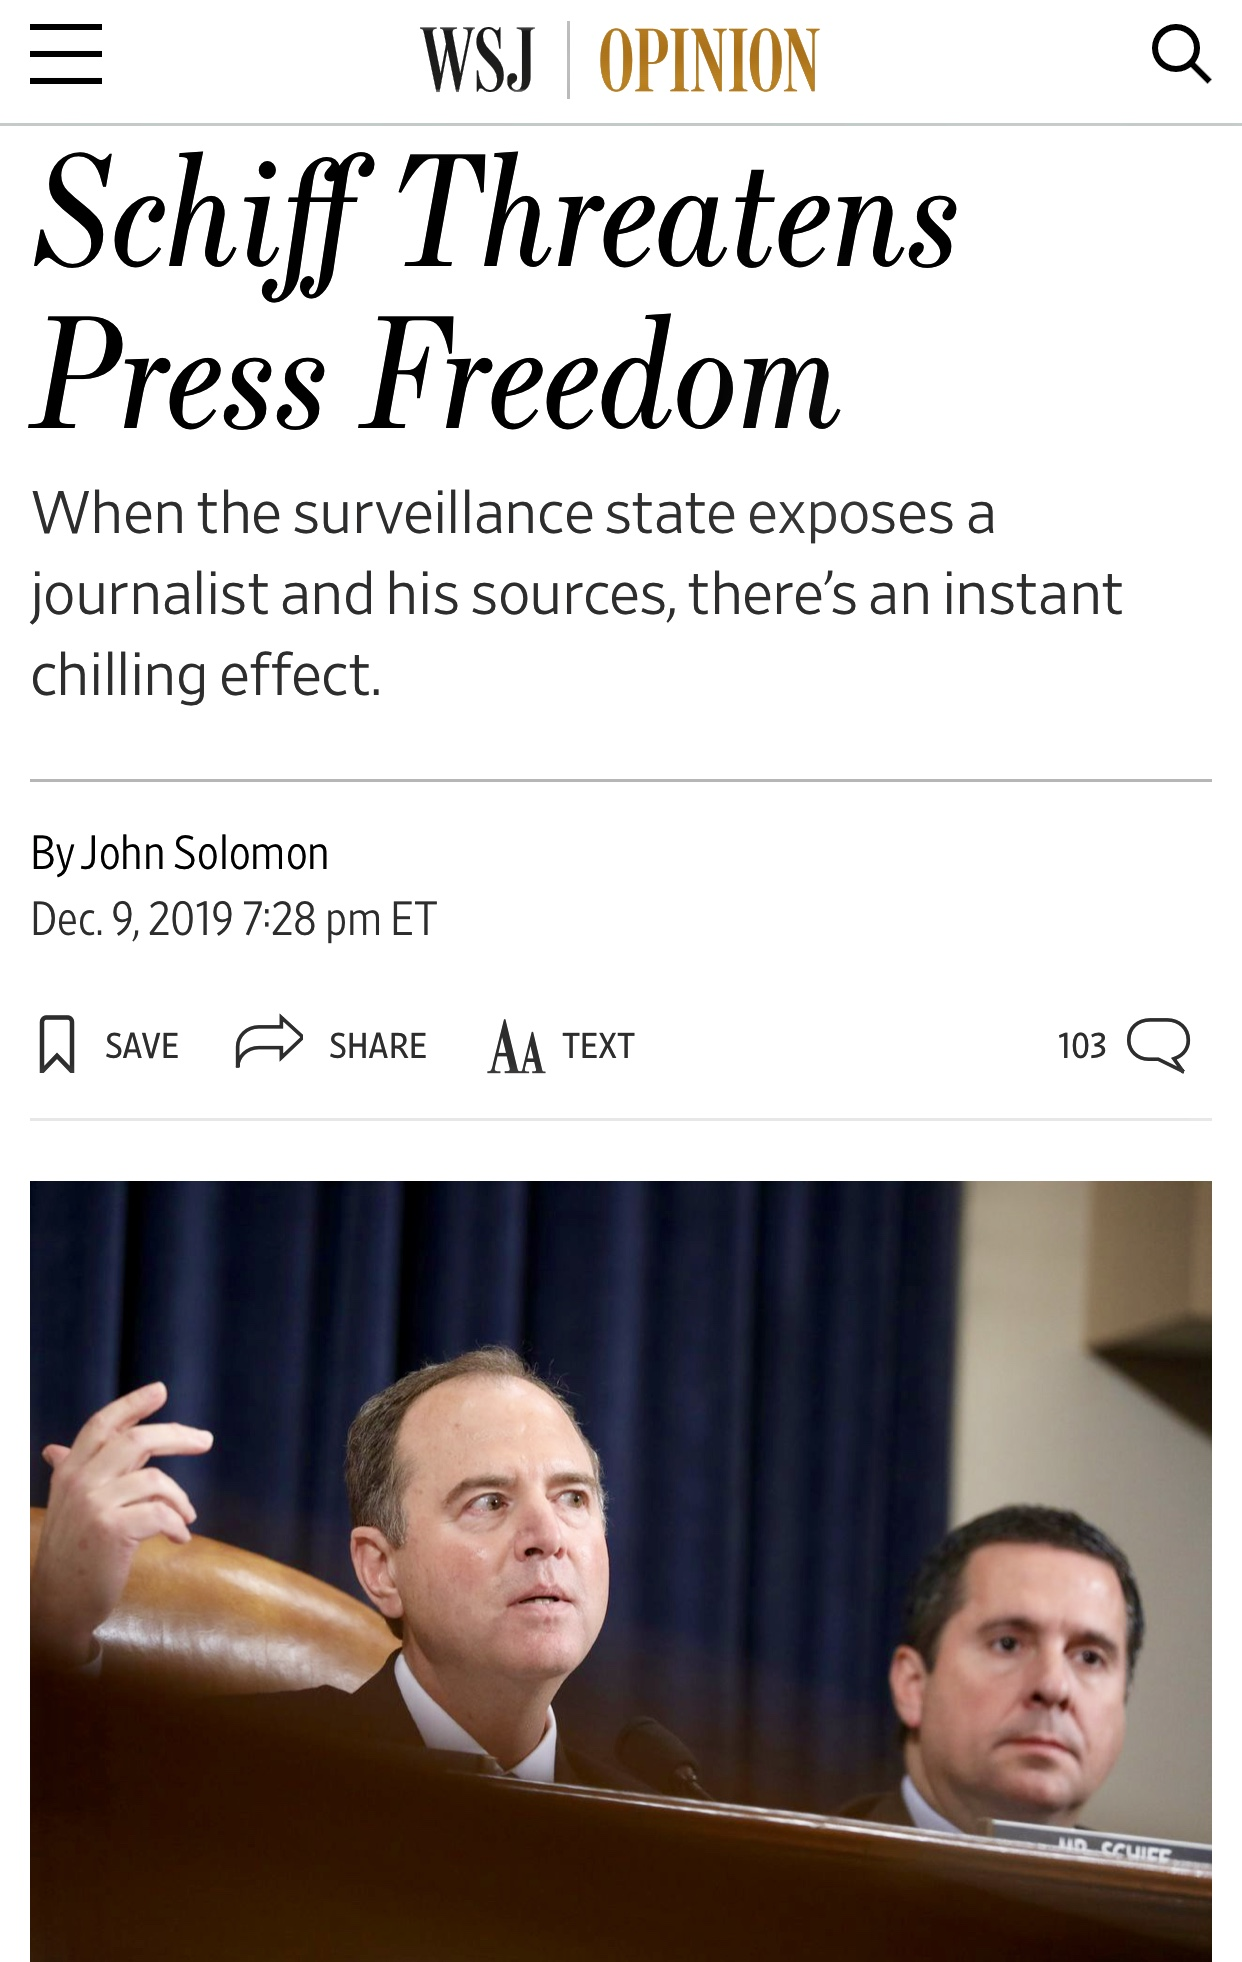 Schiff Threatens Press Freedom